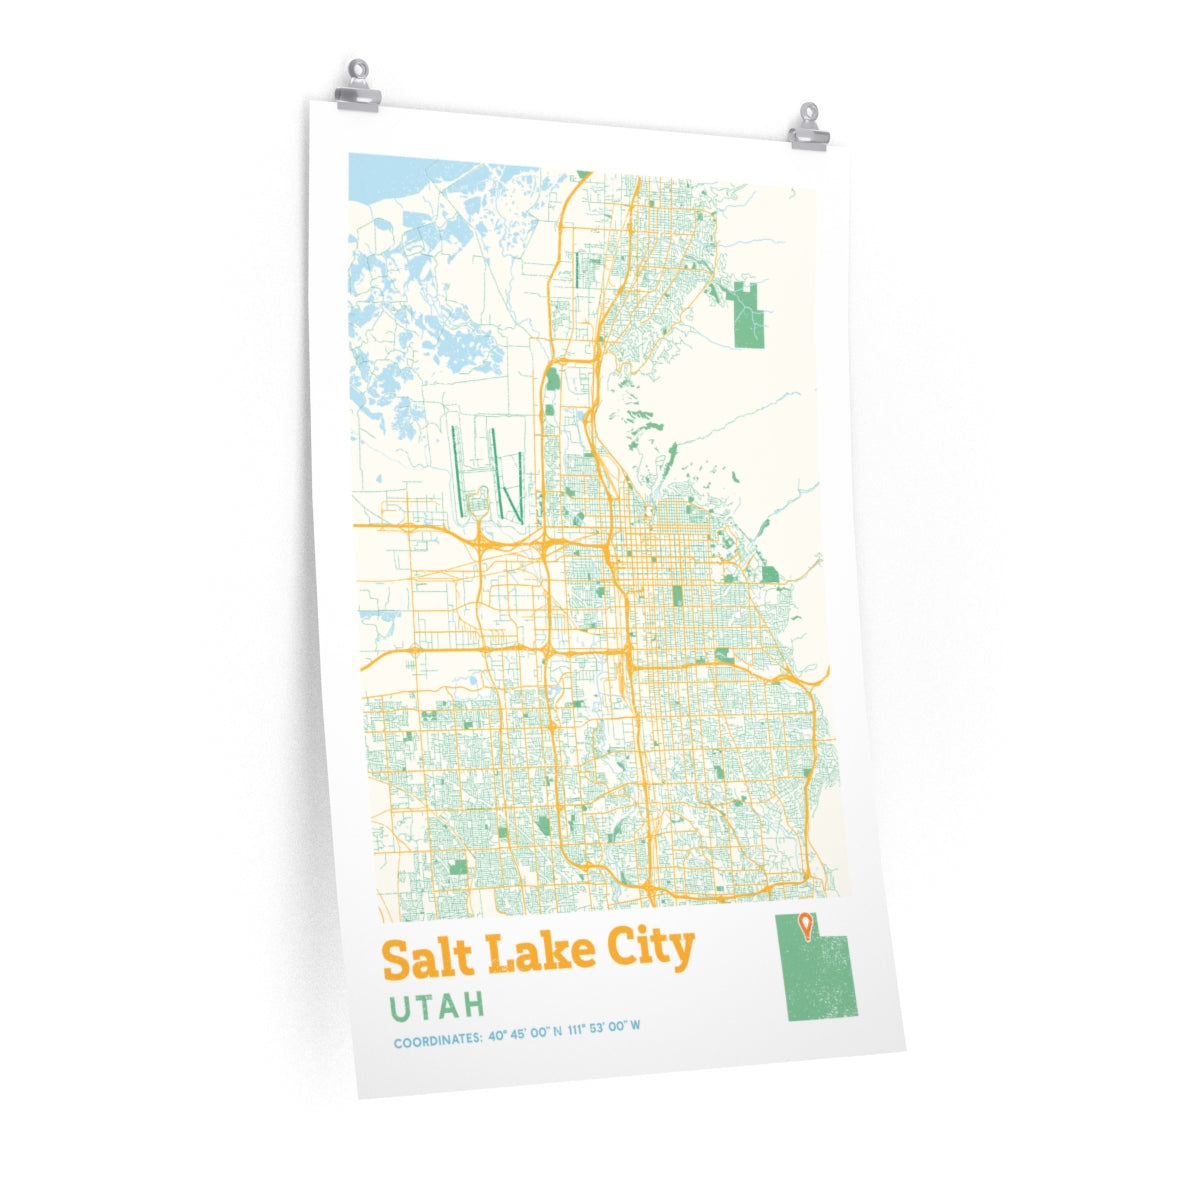 Salt Lake City Utah City Street Map Poster